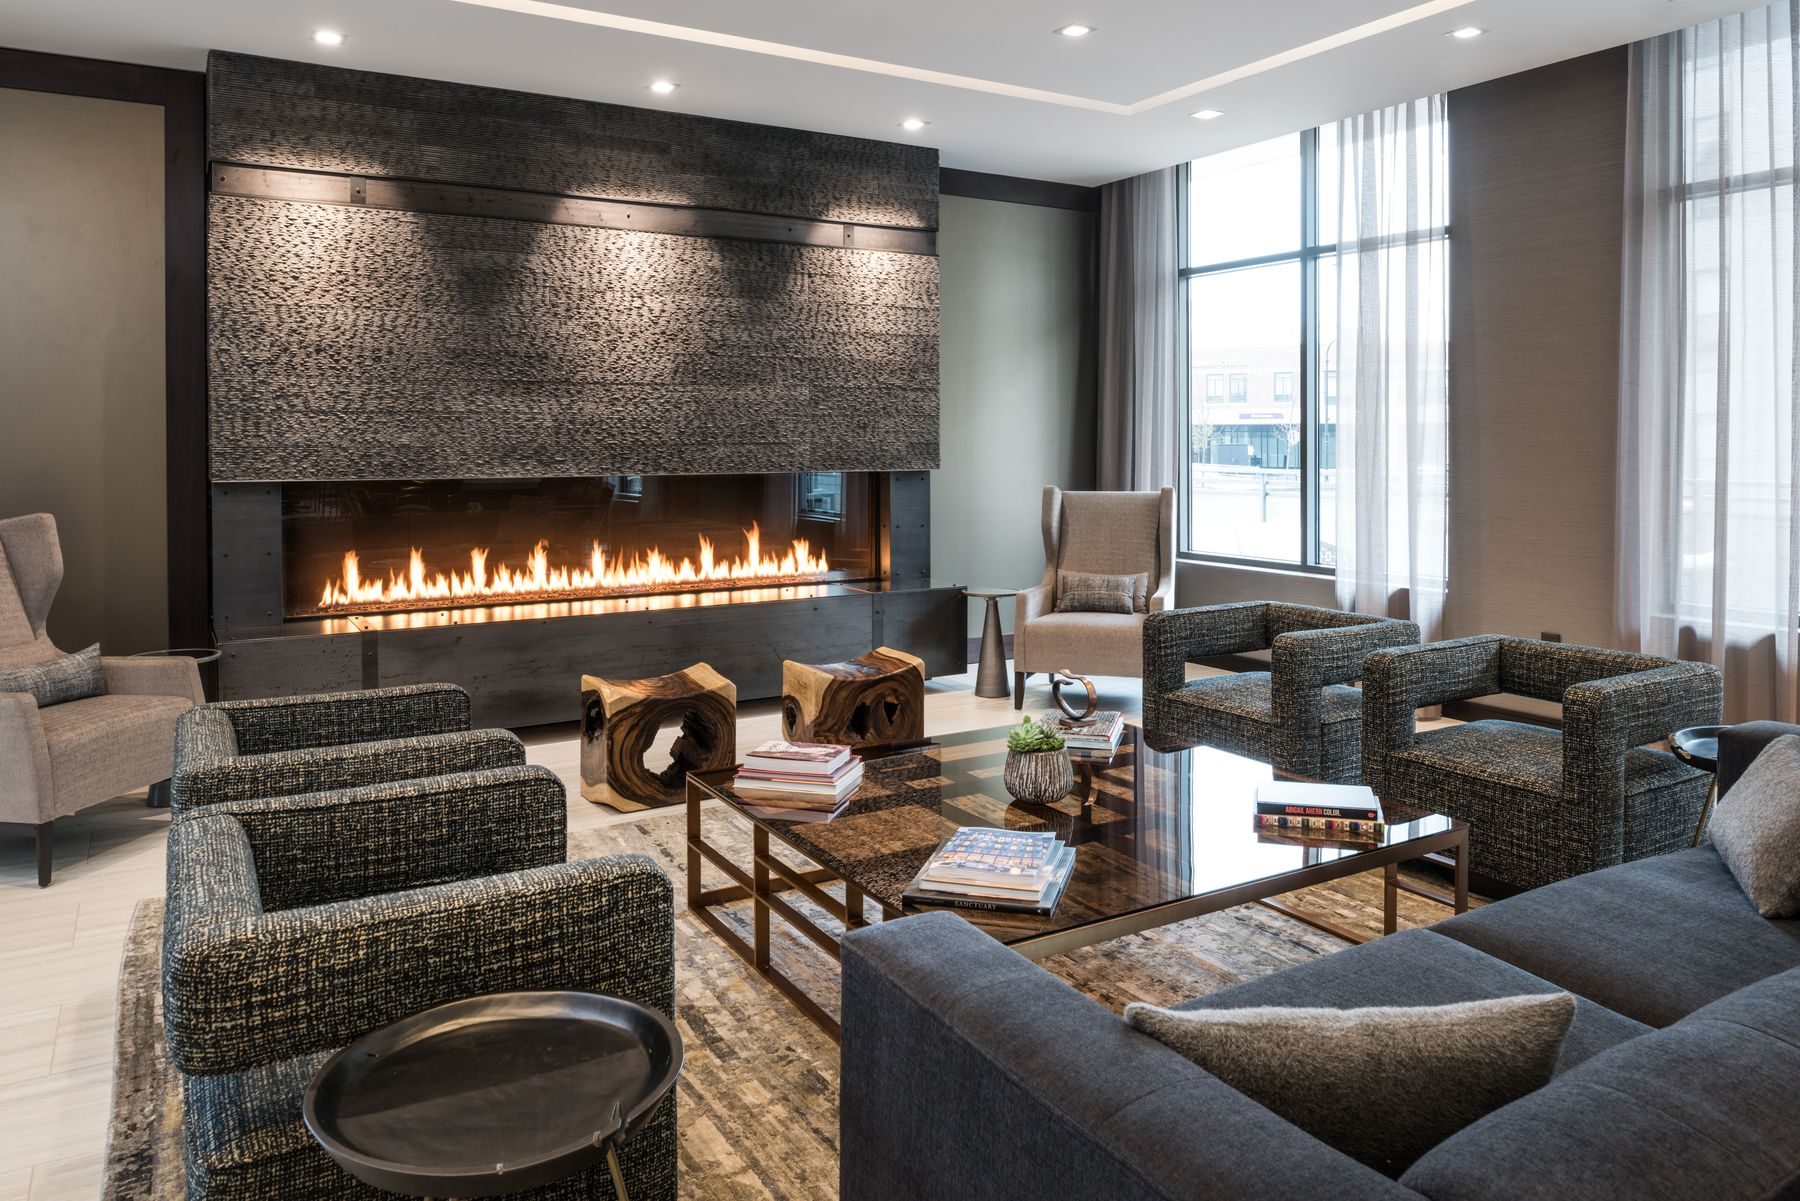 Seating area with fire place in lobby